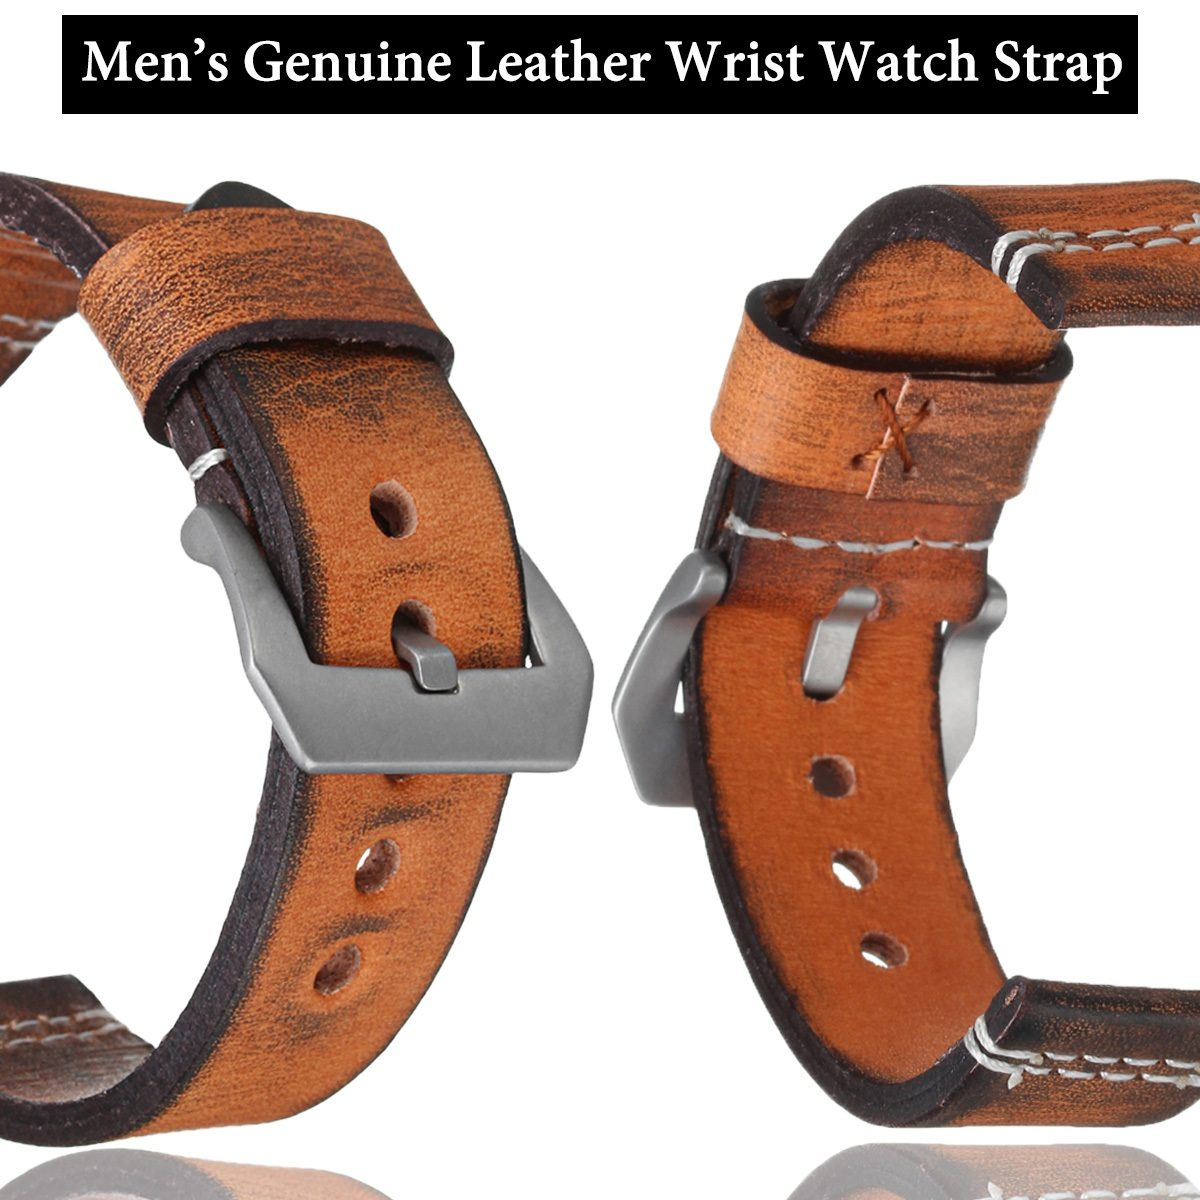 Watchbands Genuine Leather WatchBand Stainless Steel Buckle Clasp watch bands leather strap 22mm 24mmWatchbands Genuine Leather WatchBand Stainless Steel Buckle Clasp watch bands leather strap 22mm 24mm